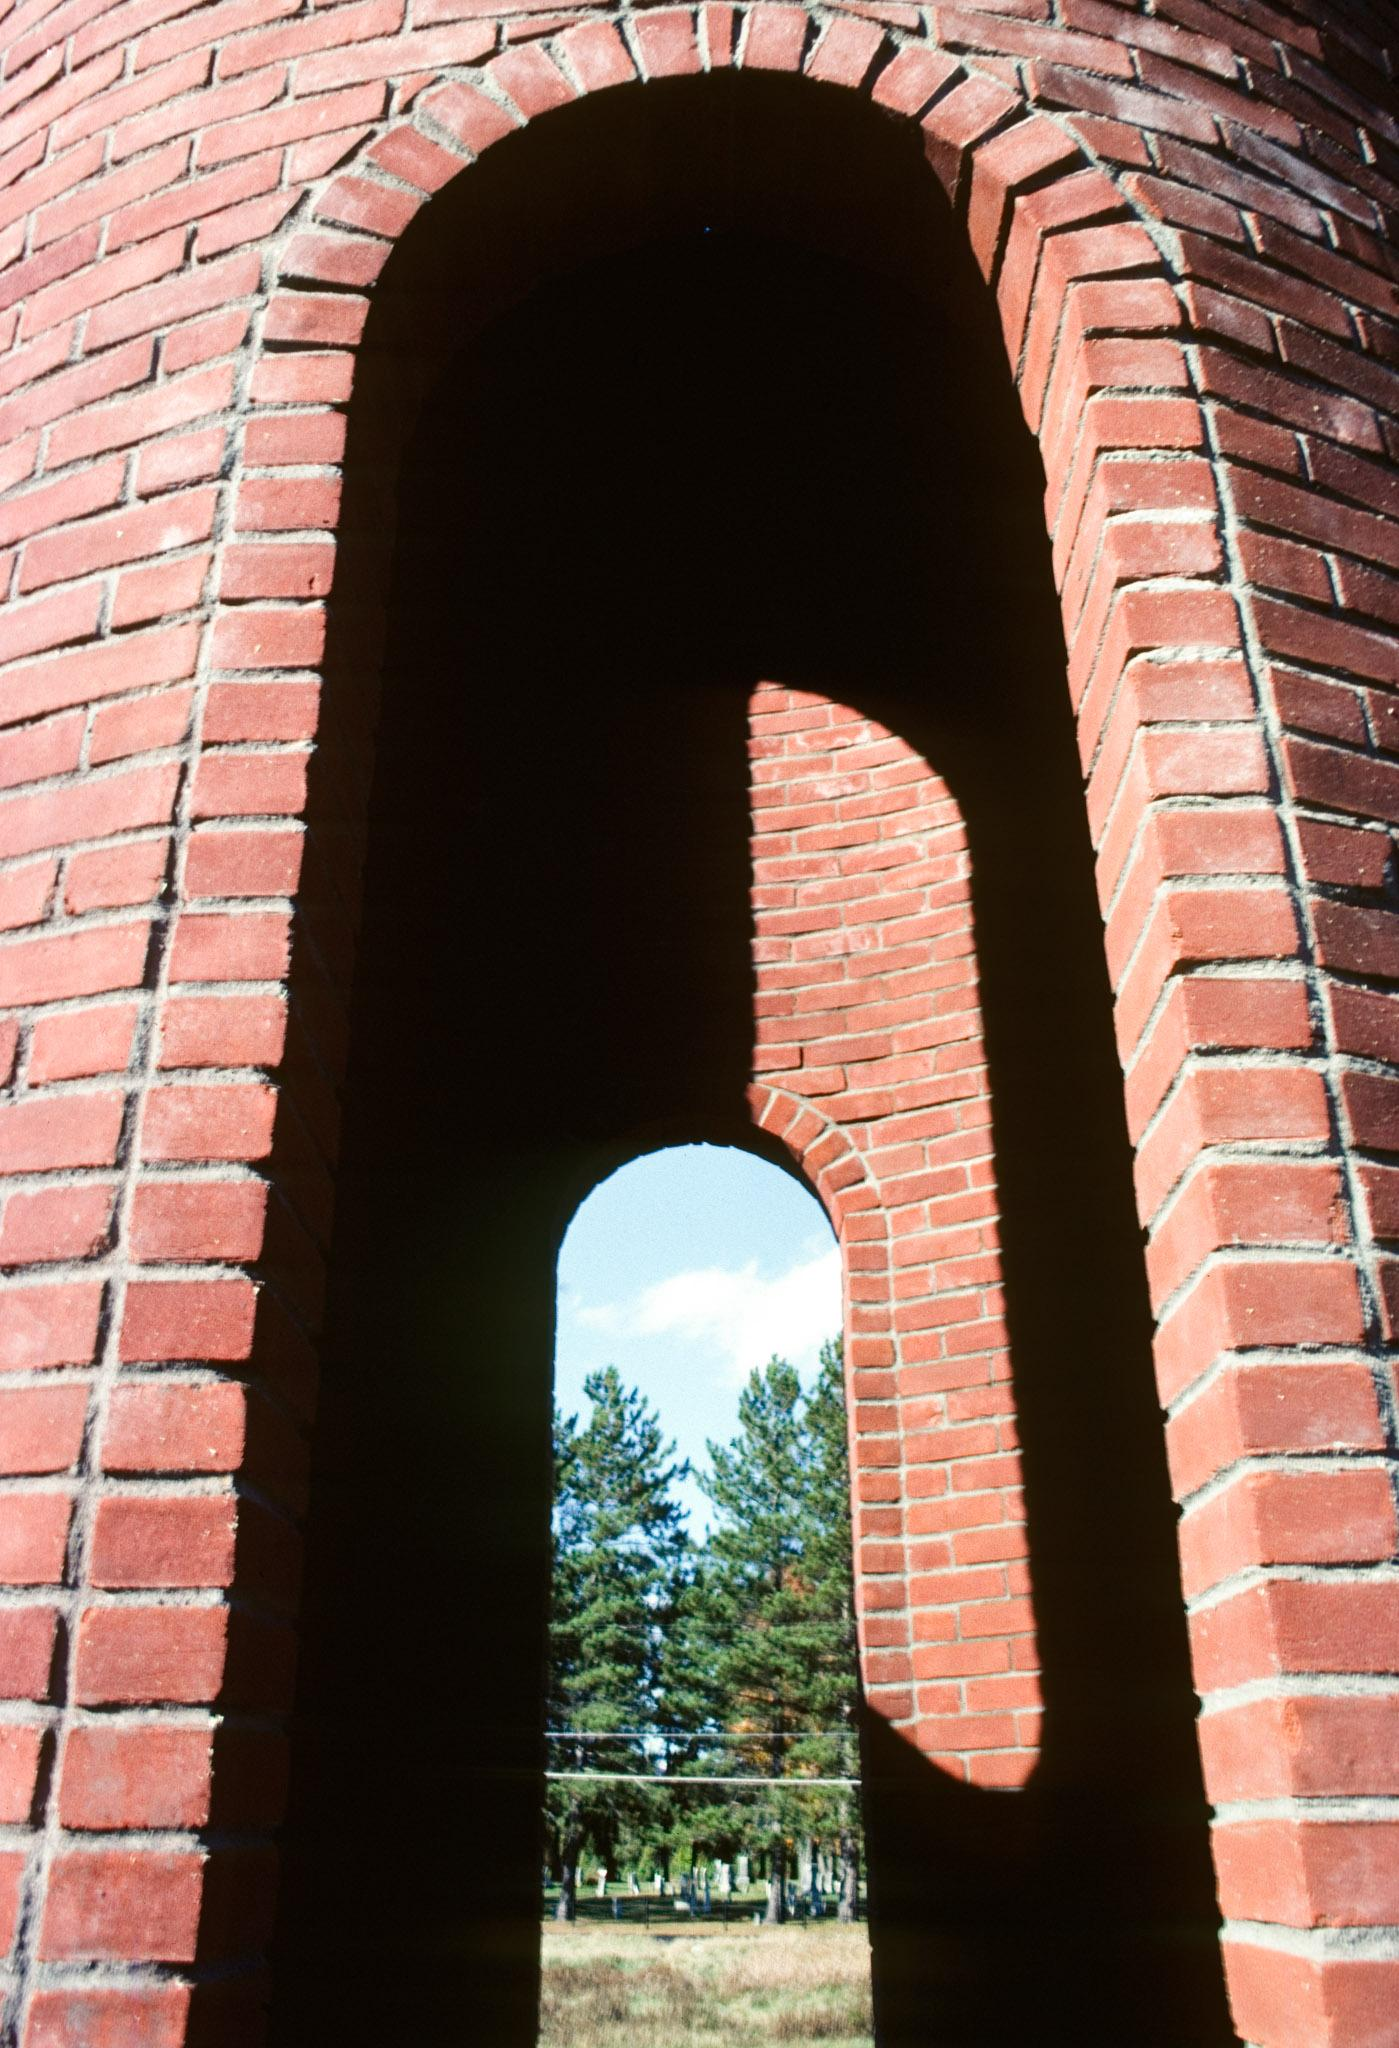 looking through two oval shaped windows in a brick structure